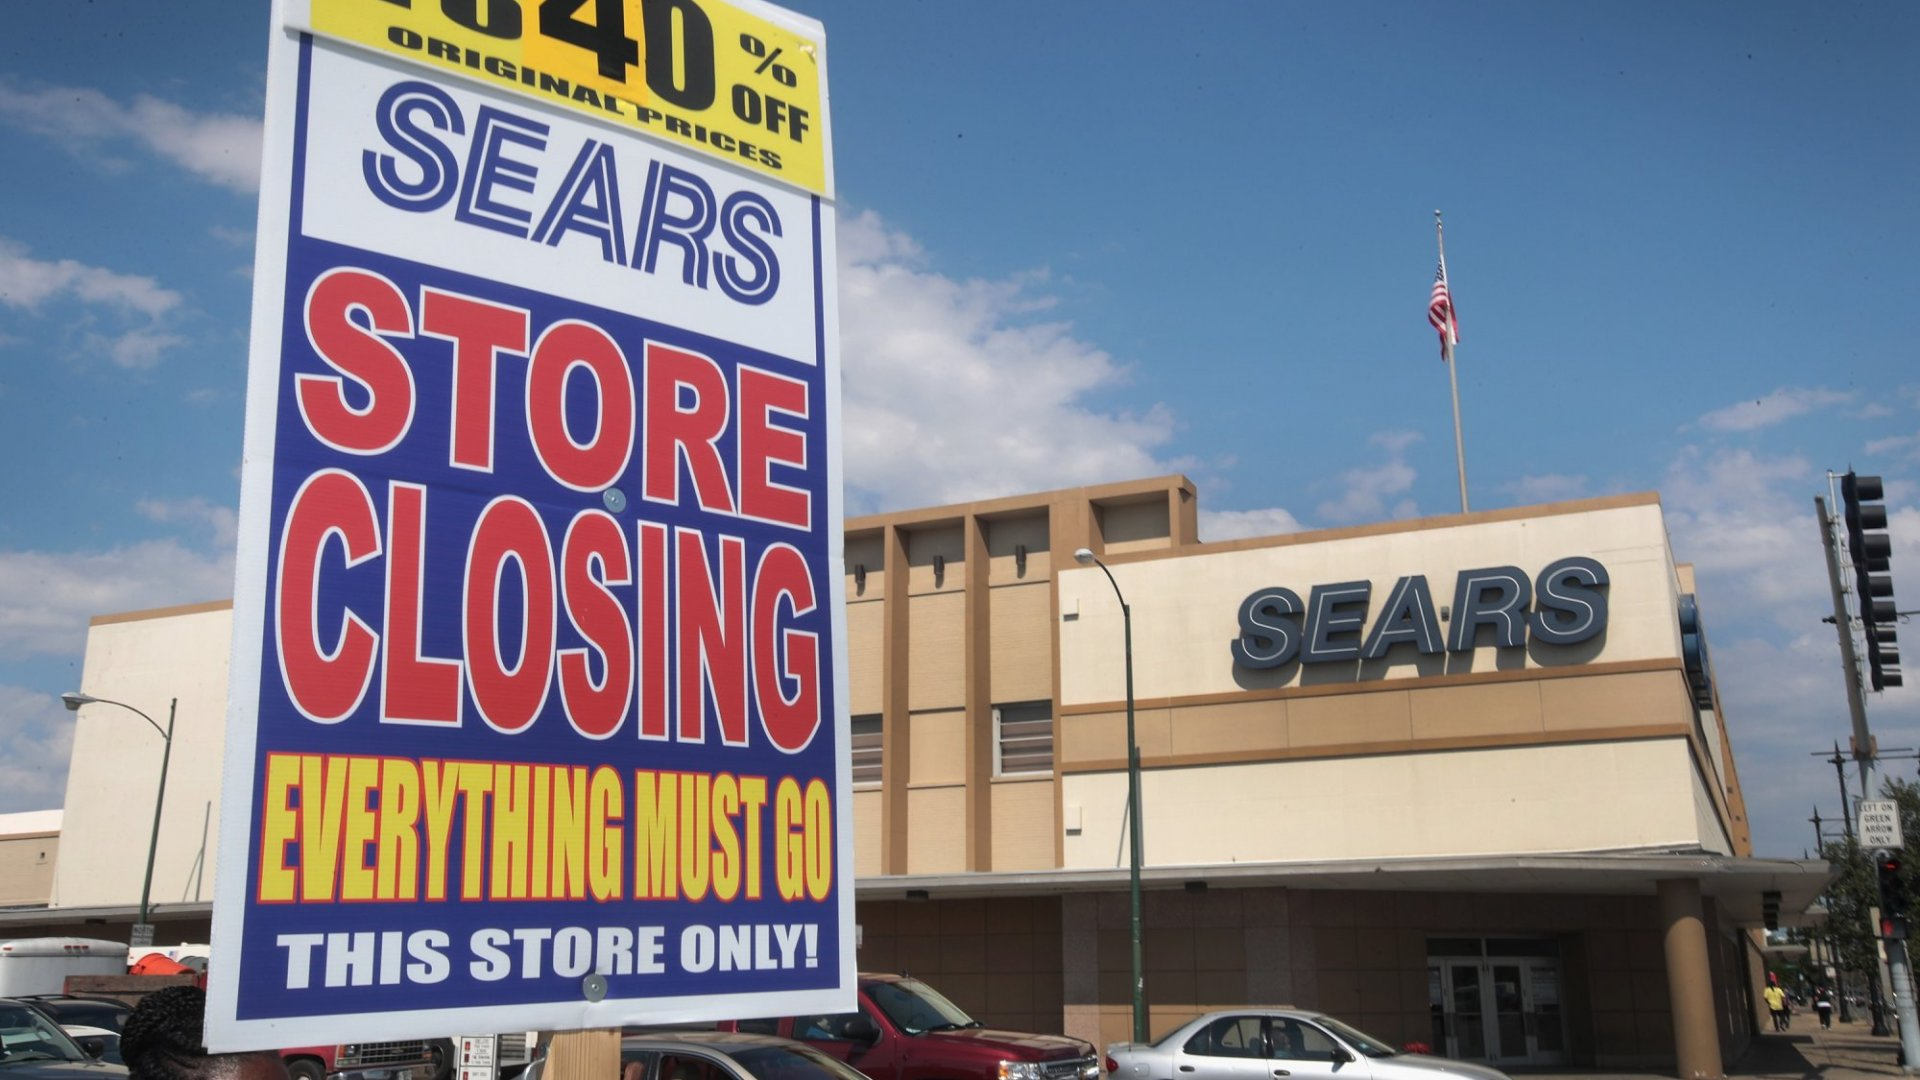 Why Sears Filing for Bankruptcy Should Make You Think About Your Own Exit Strategy